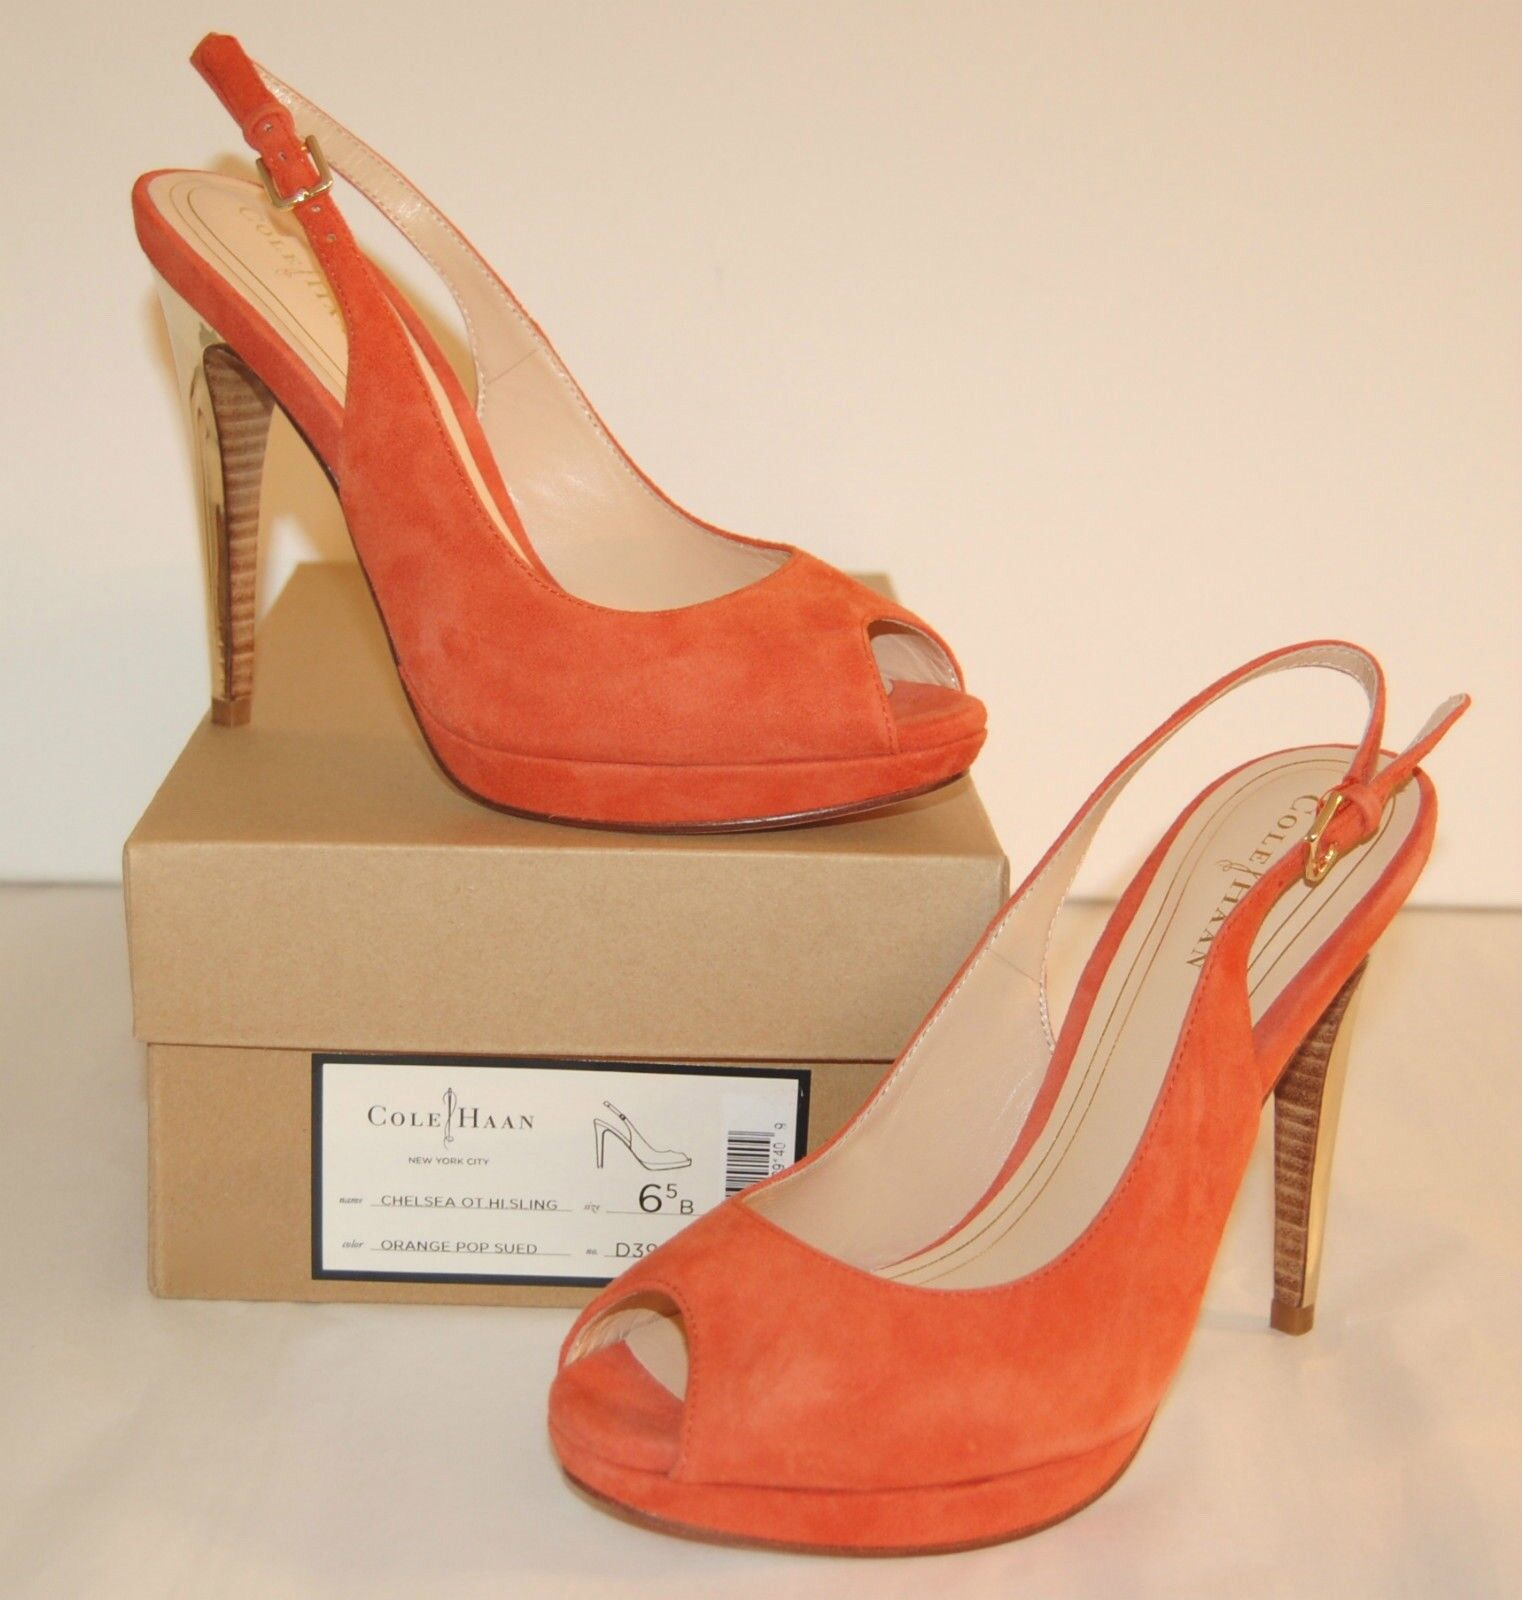 New  298 Cole Haan Nike Air Chelsea OT Hi Slingback PeepToe Orange Pop Suede lot